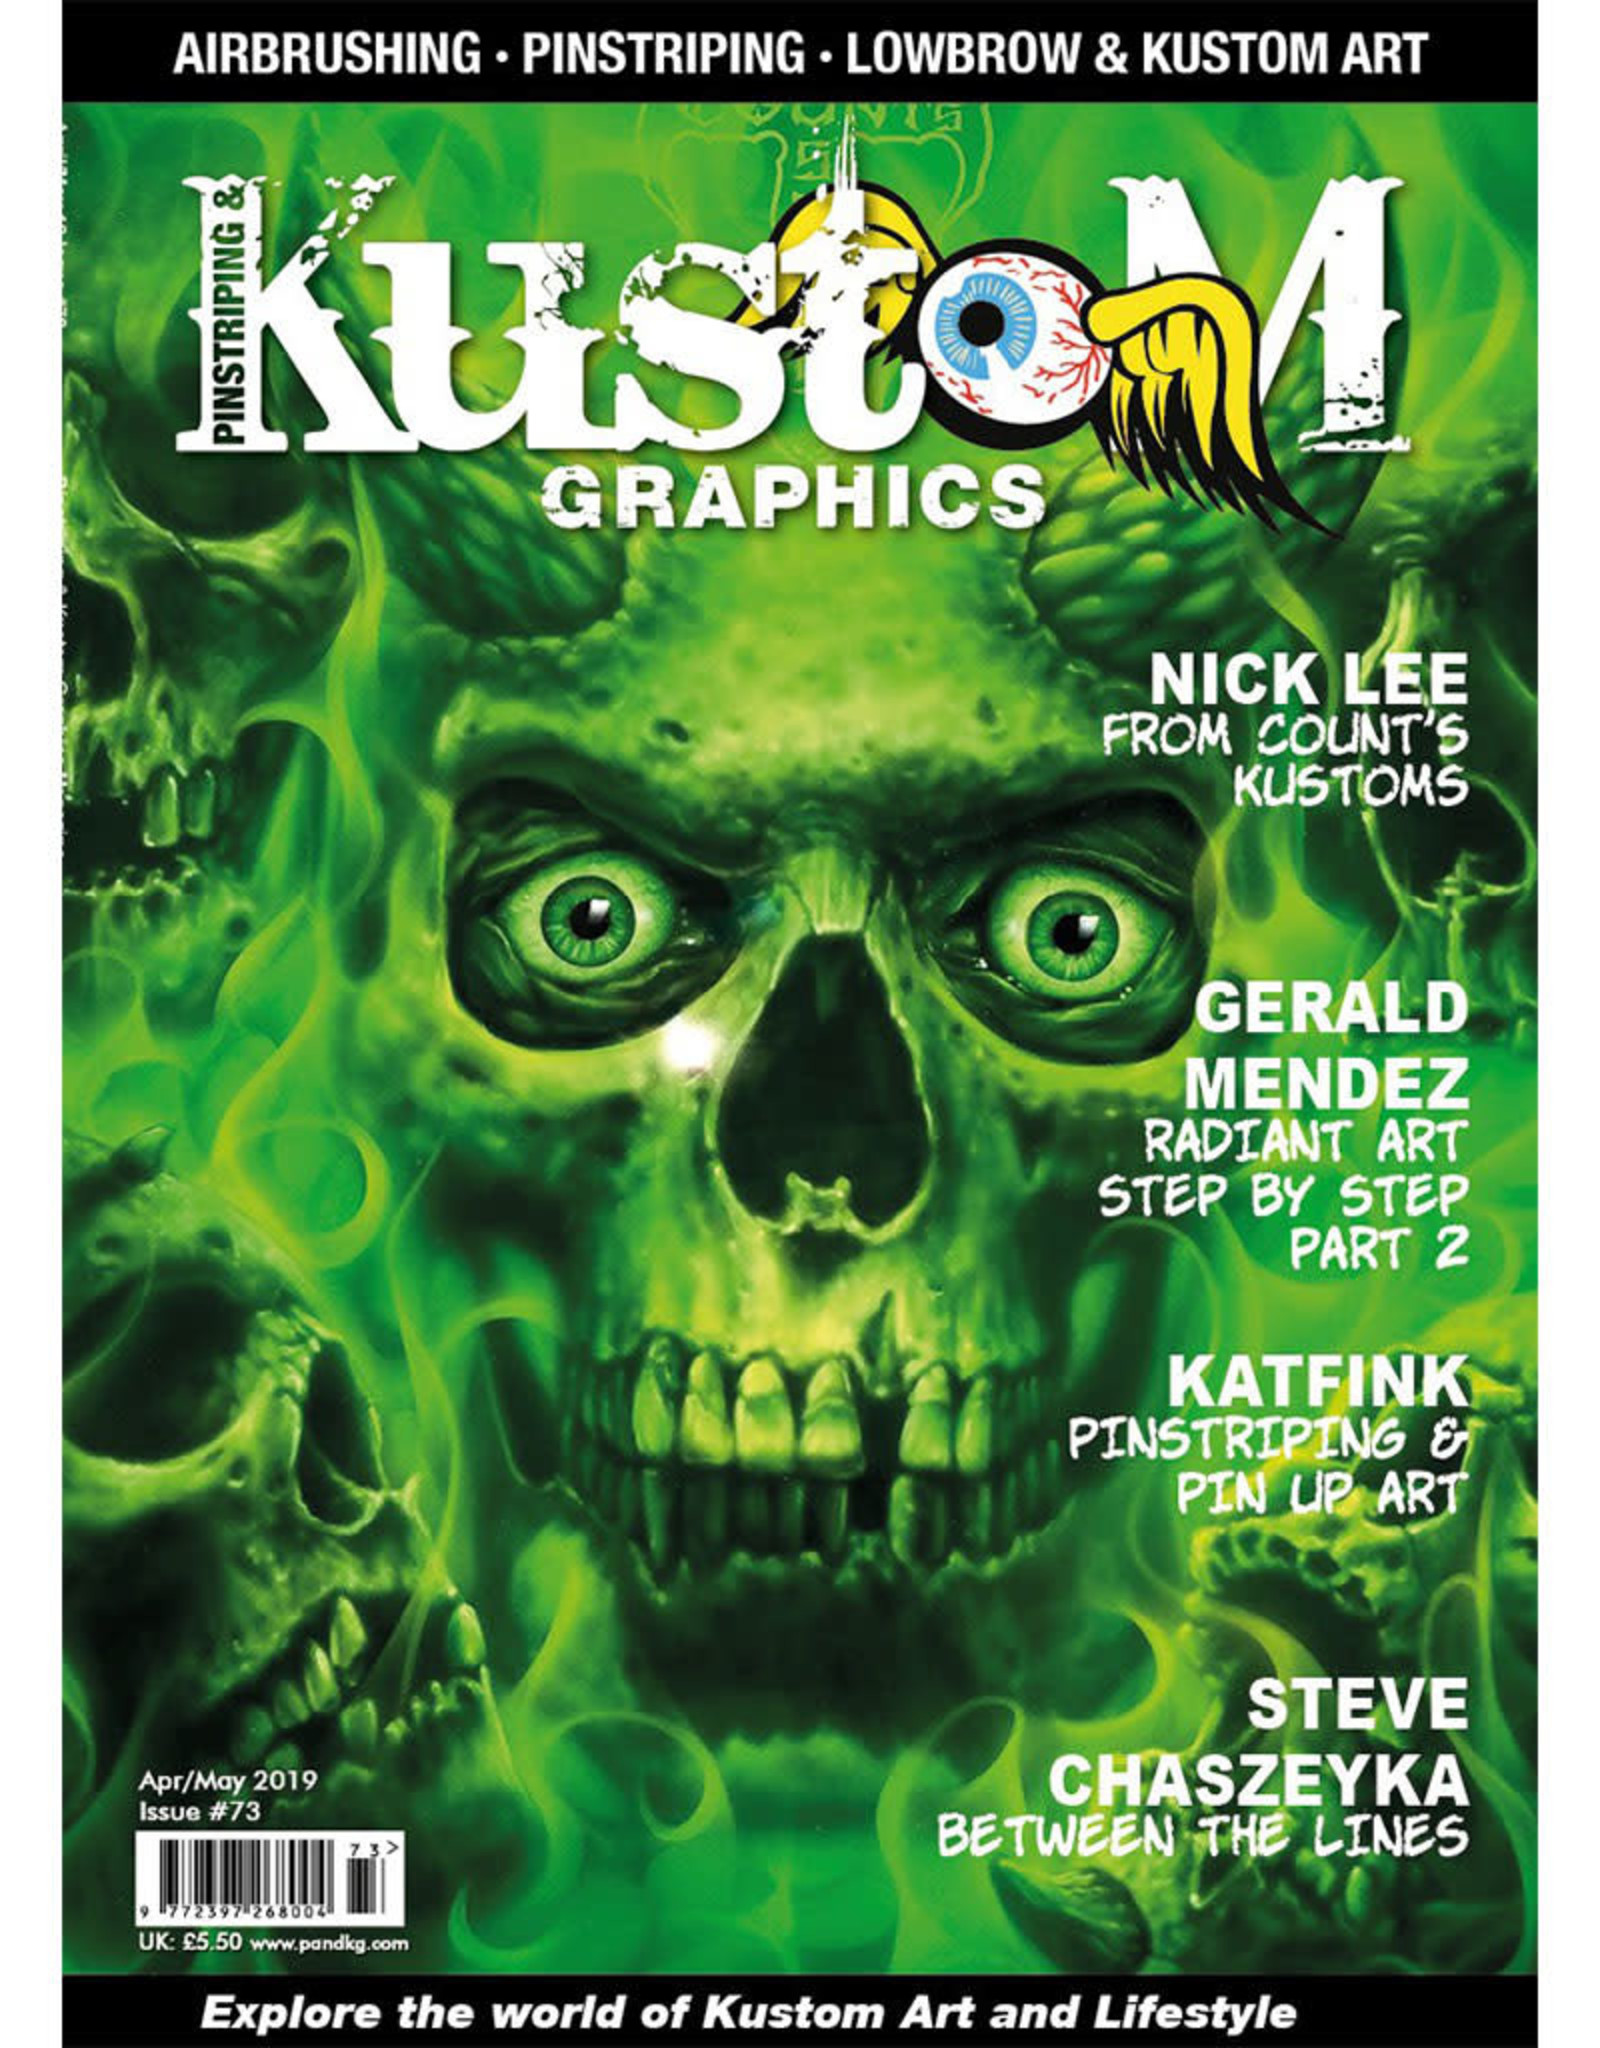 Pinstriping & Kustom graphics magazine Pinstriping & Kustom Graphics magazine #73